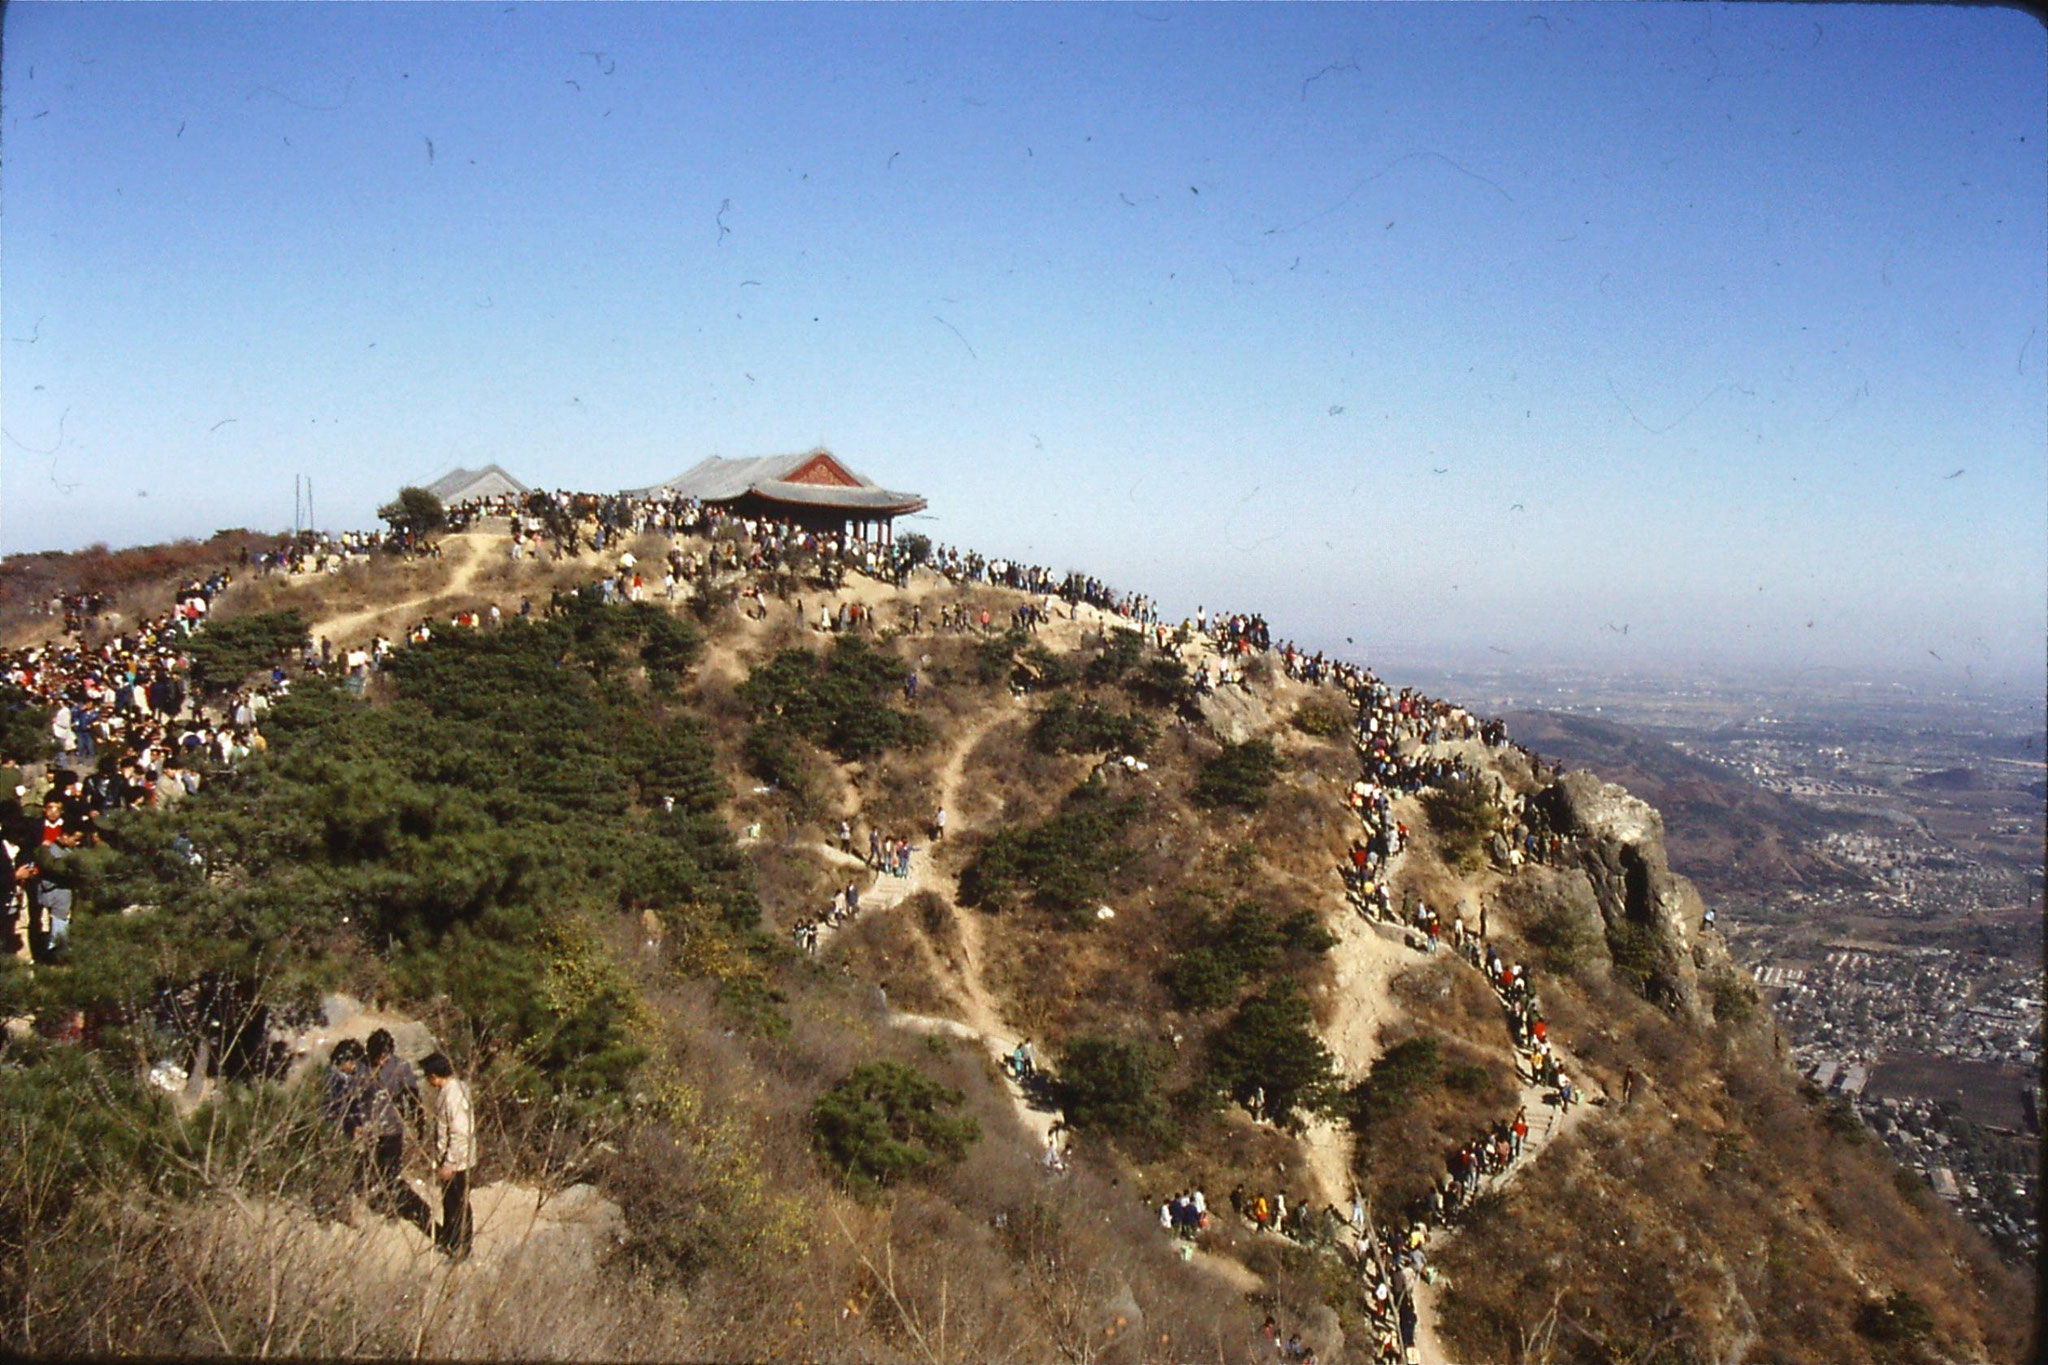 6/11/1988: 31: outing to Xiangshan